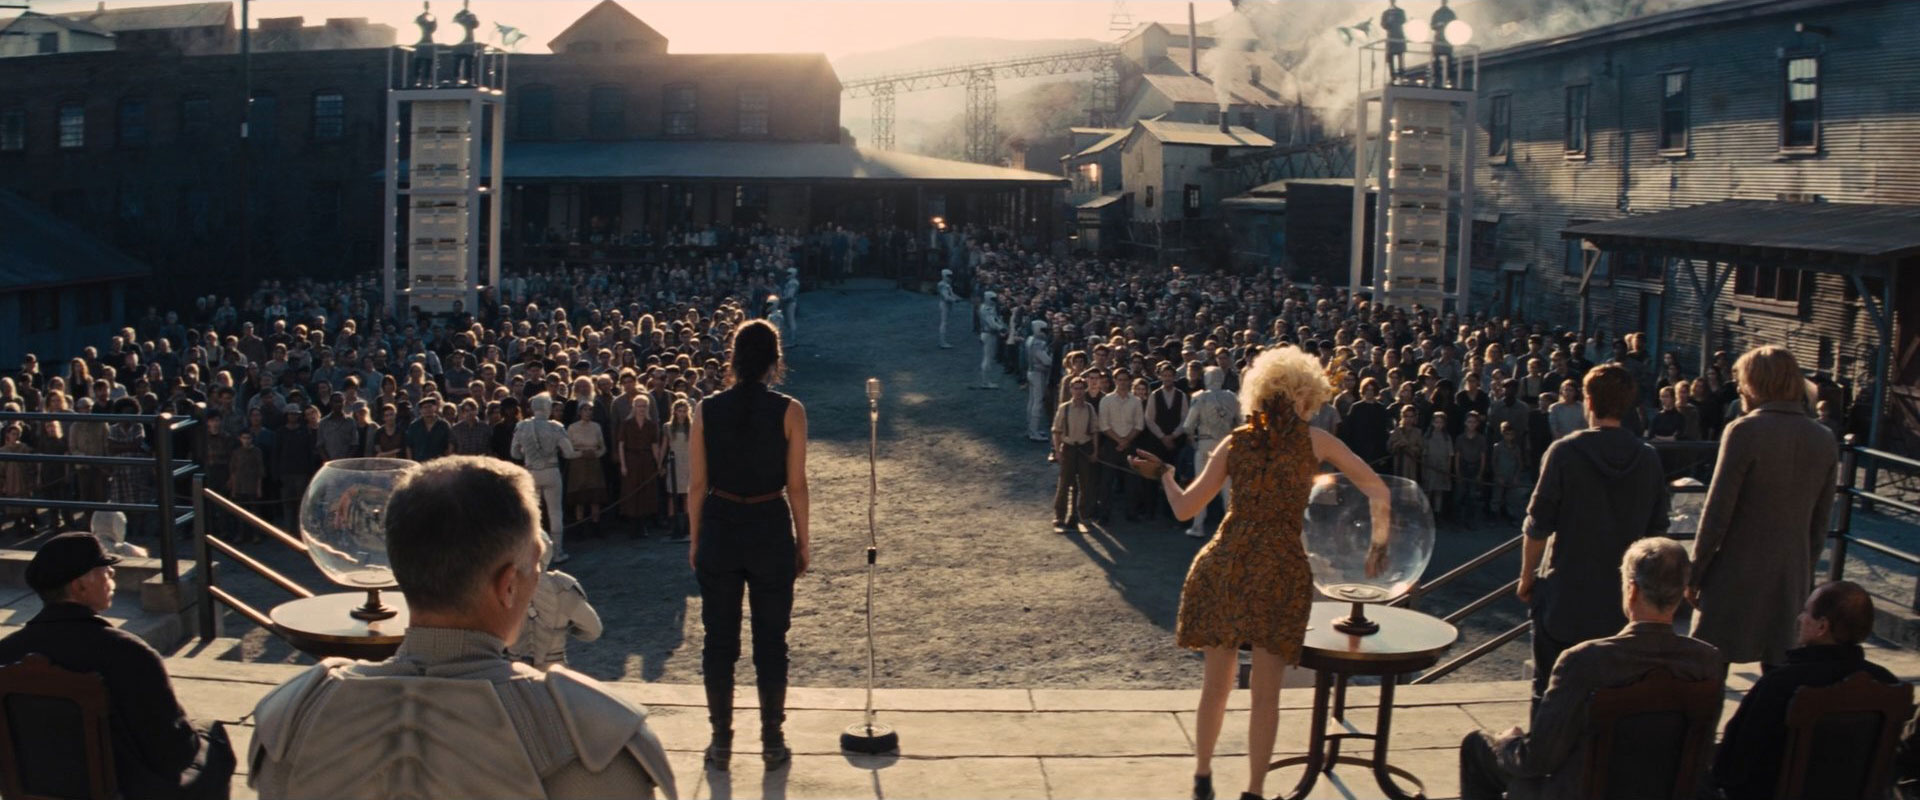 The Reaping at District 12, as depicted in The Hunger Games: Catching Fire.